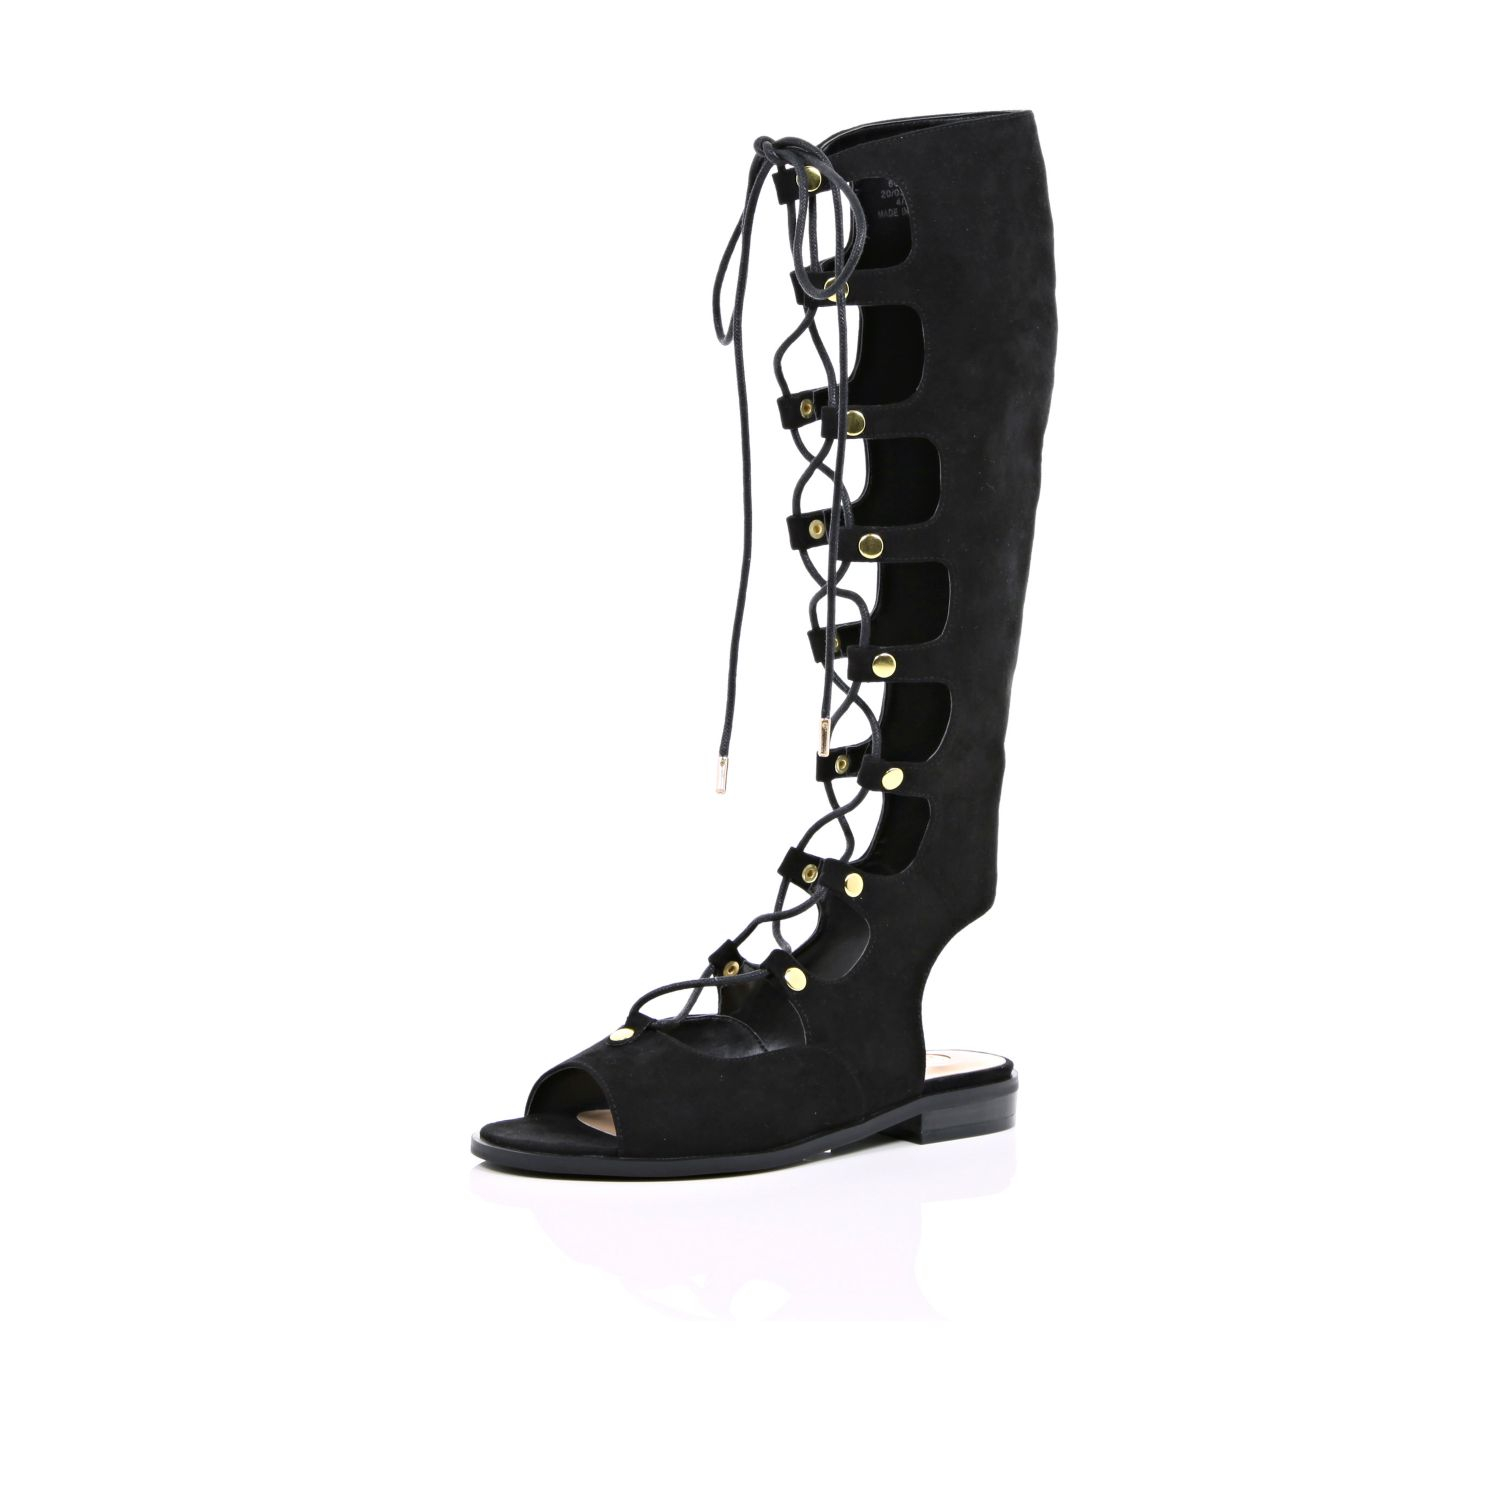 Womens shoes, boots, high heels, and sandals for every day. Sexy boots and high heels for club, work, and style. Top quality and cheap prices. 0. Item was added to your bag! View Bag. Checkout. Continue Shopping. My Bag 0. Item was added to your bag! Little Black Dress.